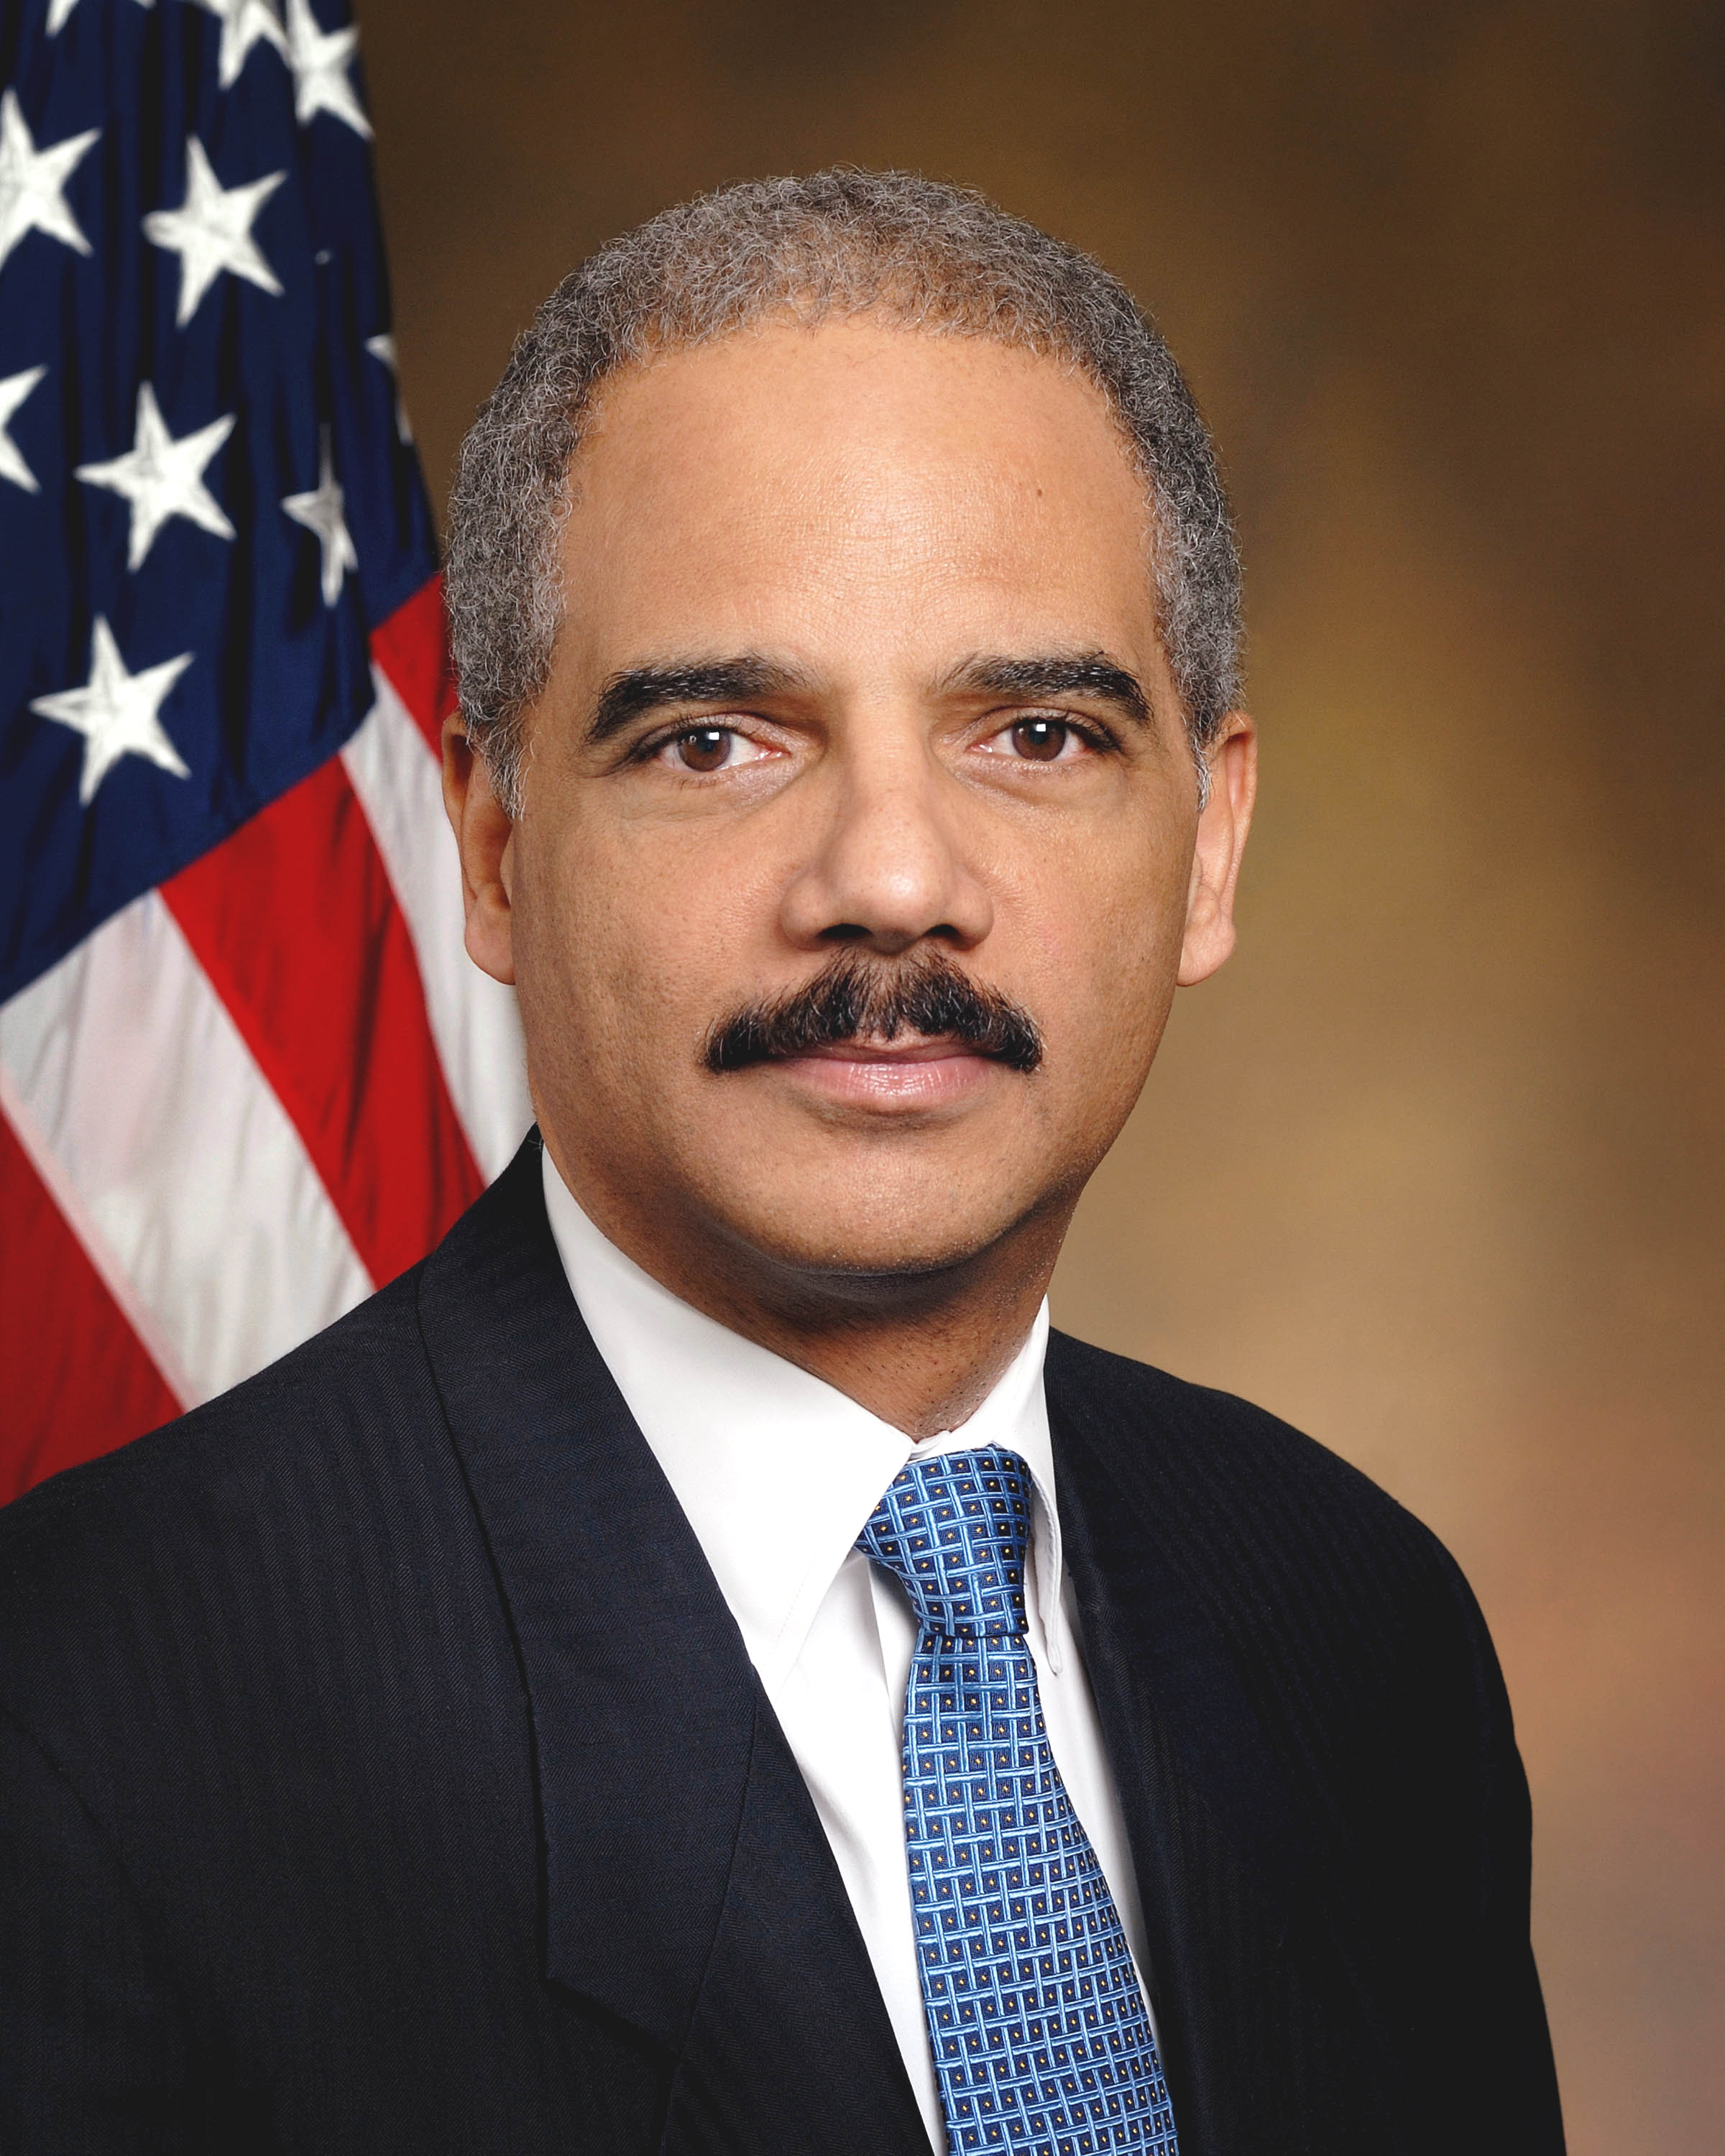 The 70-year old son of father Eric Himpton Holder, Sr and mother Miriam Holder Eric Holder in 2021 photo. Eric Holder earned a  million dollar salary - leaving the net worth at 11.5 million in 2021